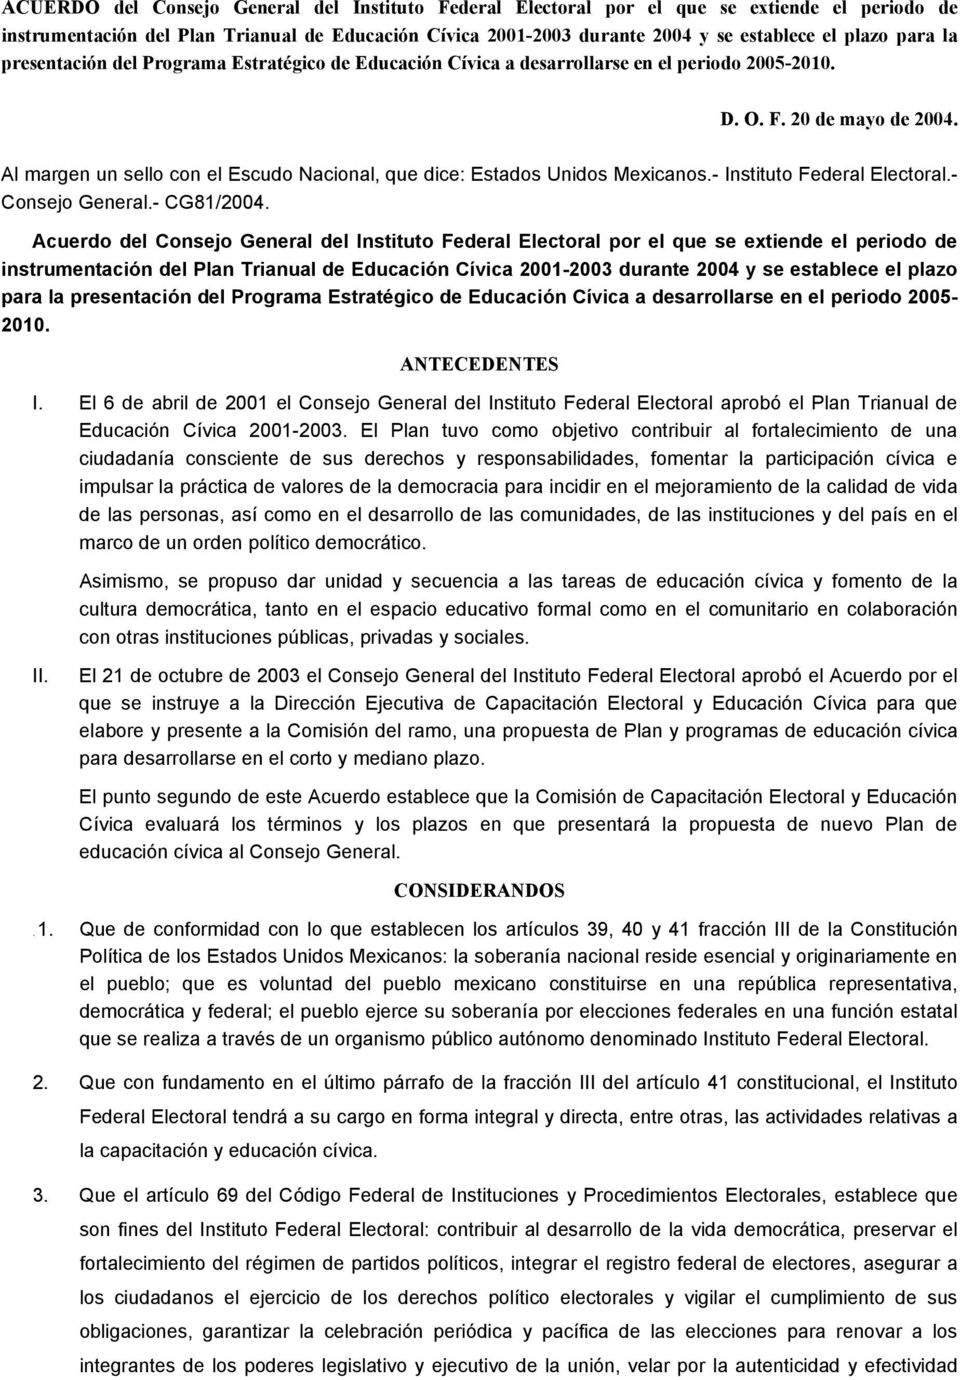 Al margen un sello con el Escudo Nacional, que dice: Estados Unidos Mexicanos.- Instituto Federal Electoral.- Consejo General.- CG81/2004.